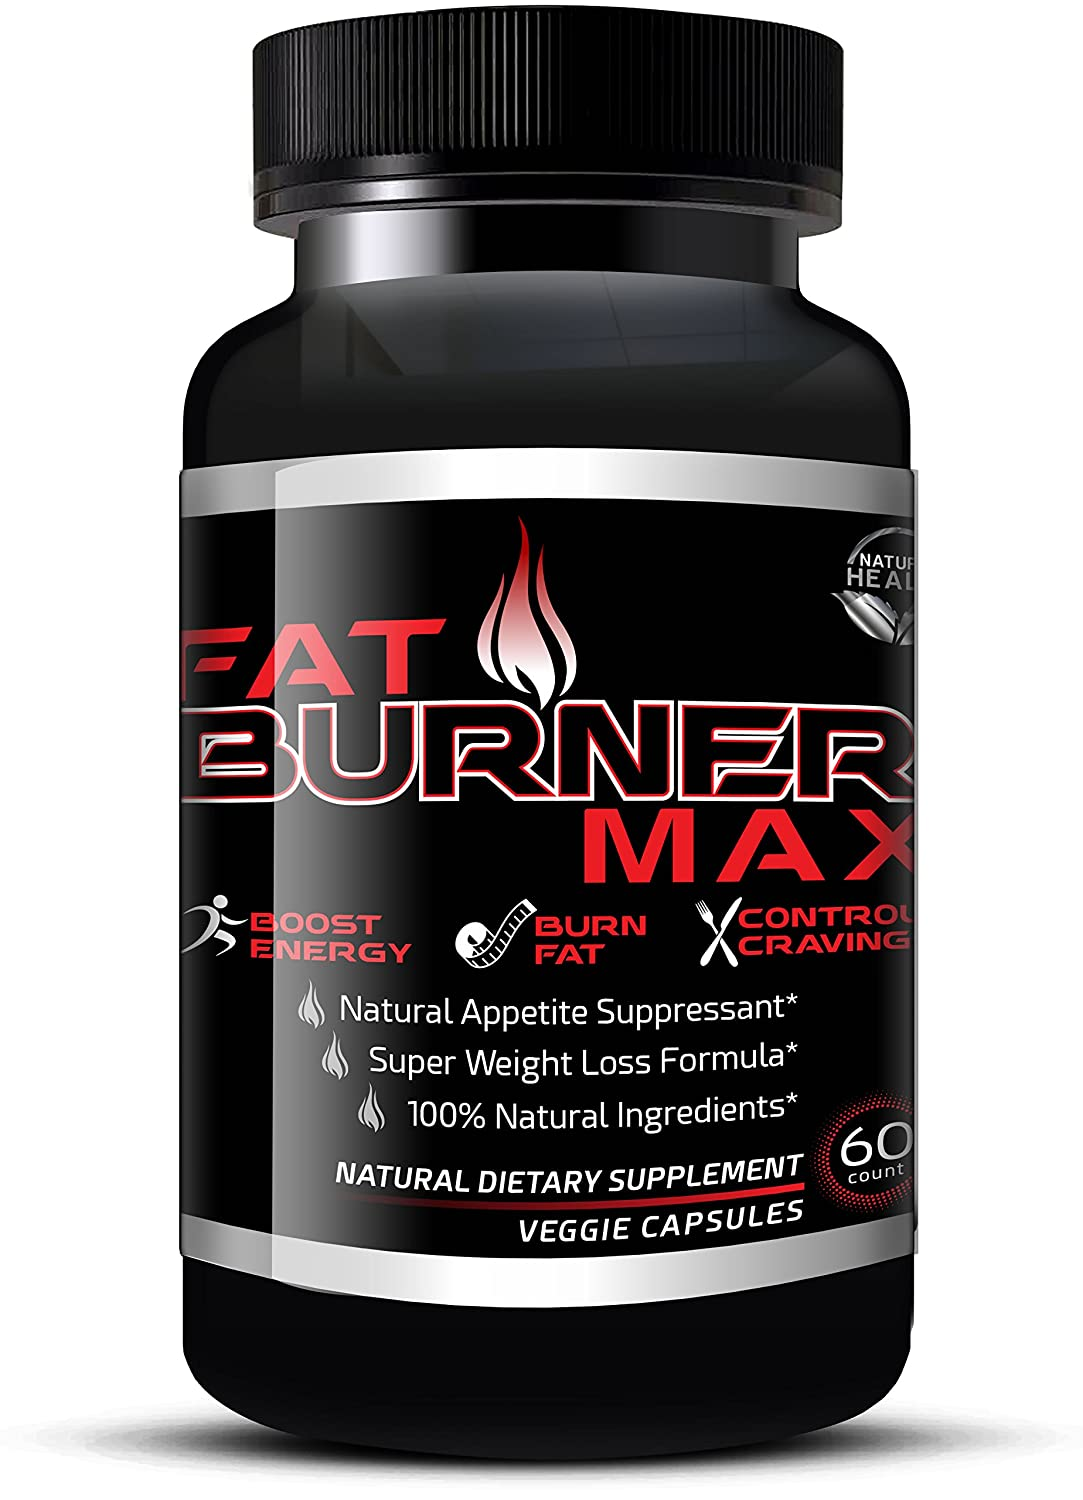 What is the best supplement to take to lose belly fat